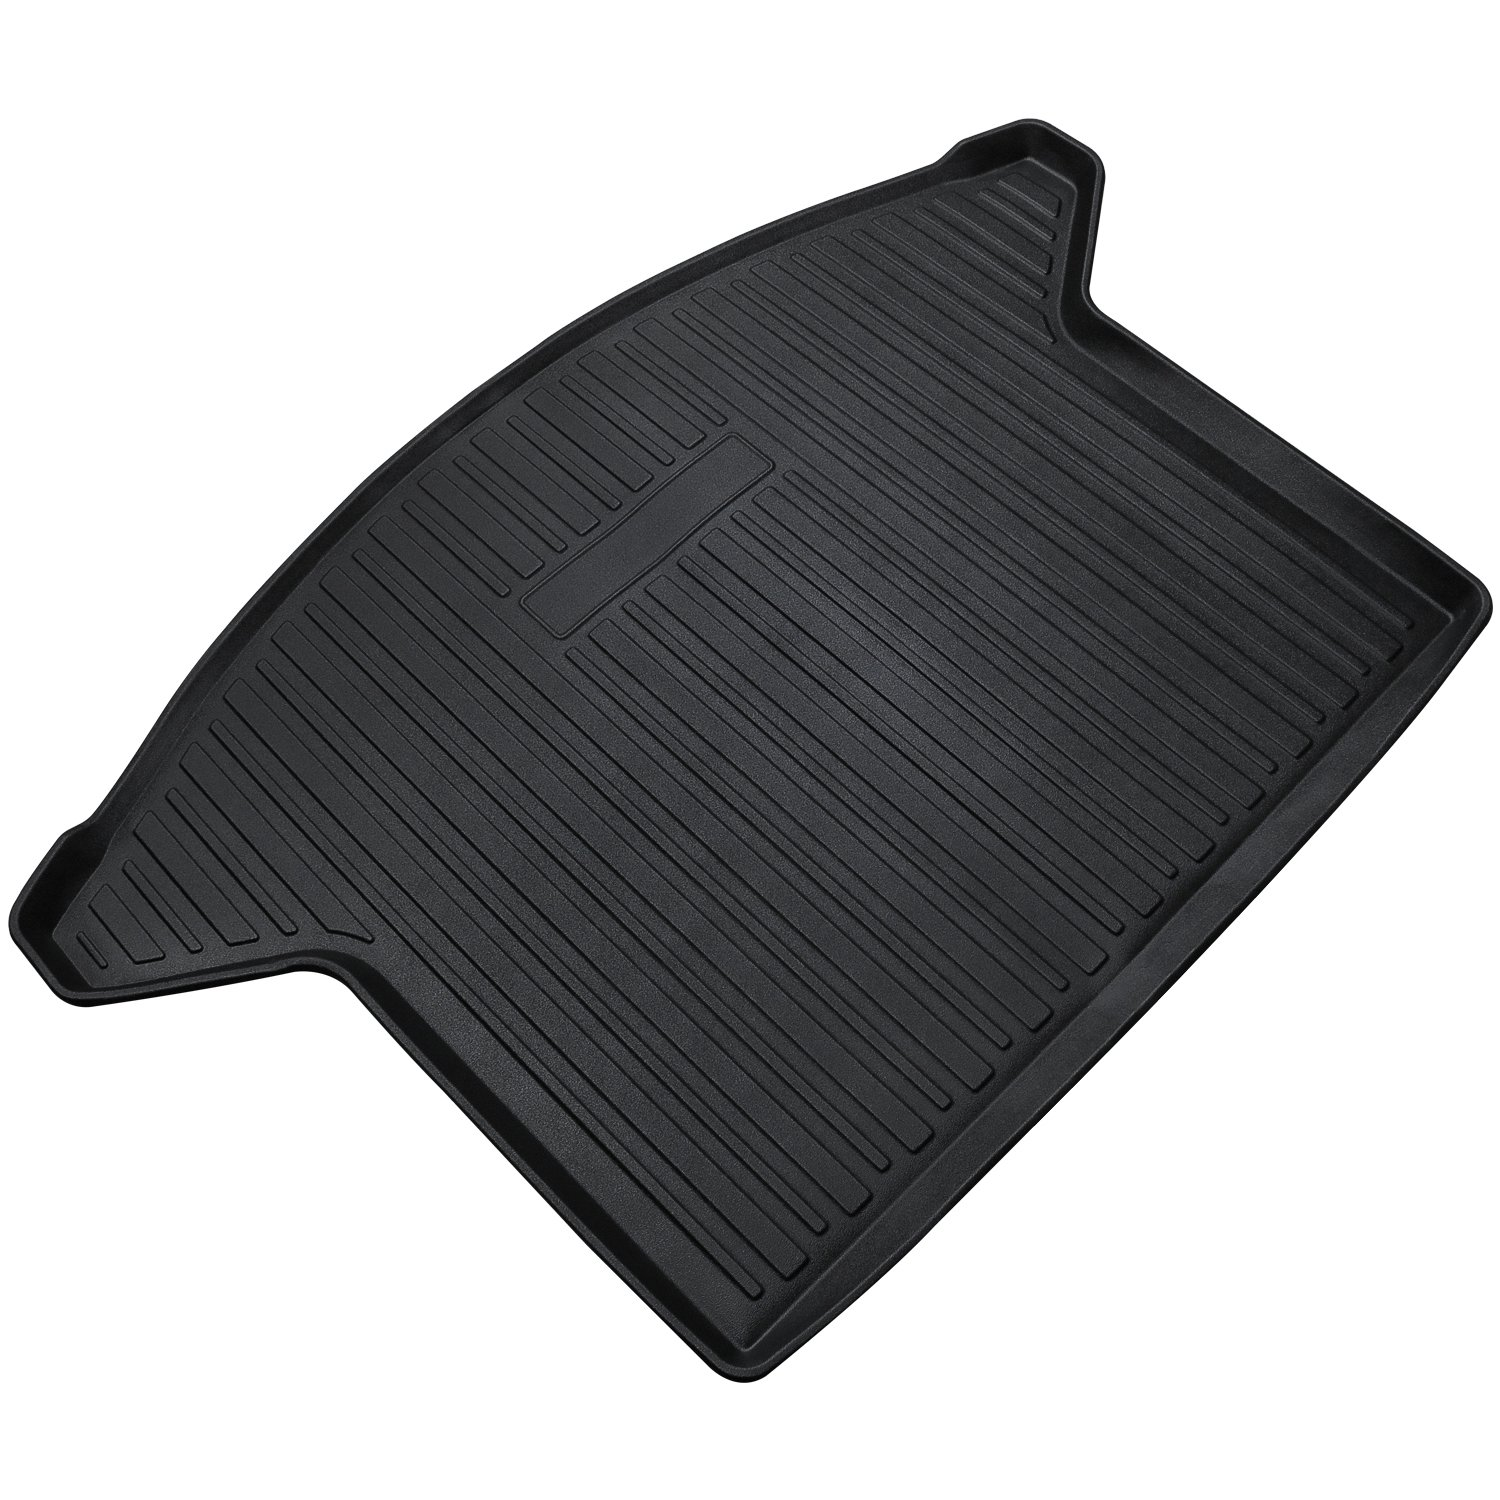 Yoursme Rear Cargo Tray Trunk Floor Mat Cargo Liner Protector for 2017-2019 Mazda CX-5